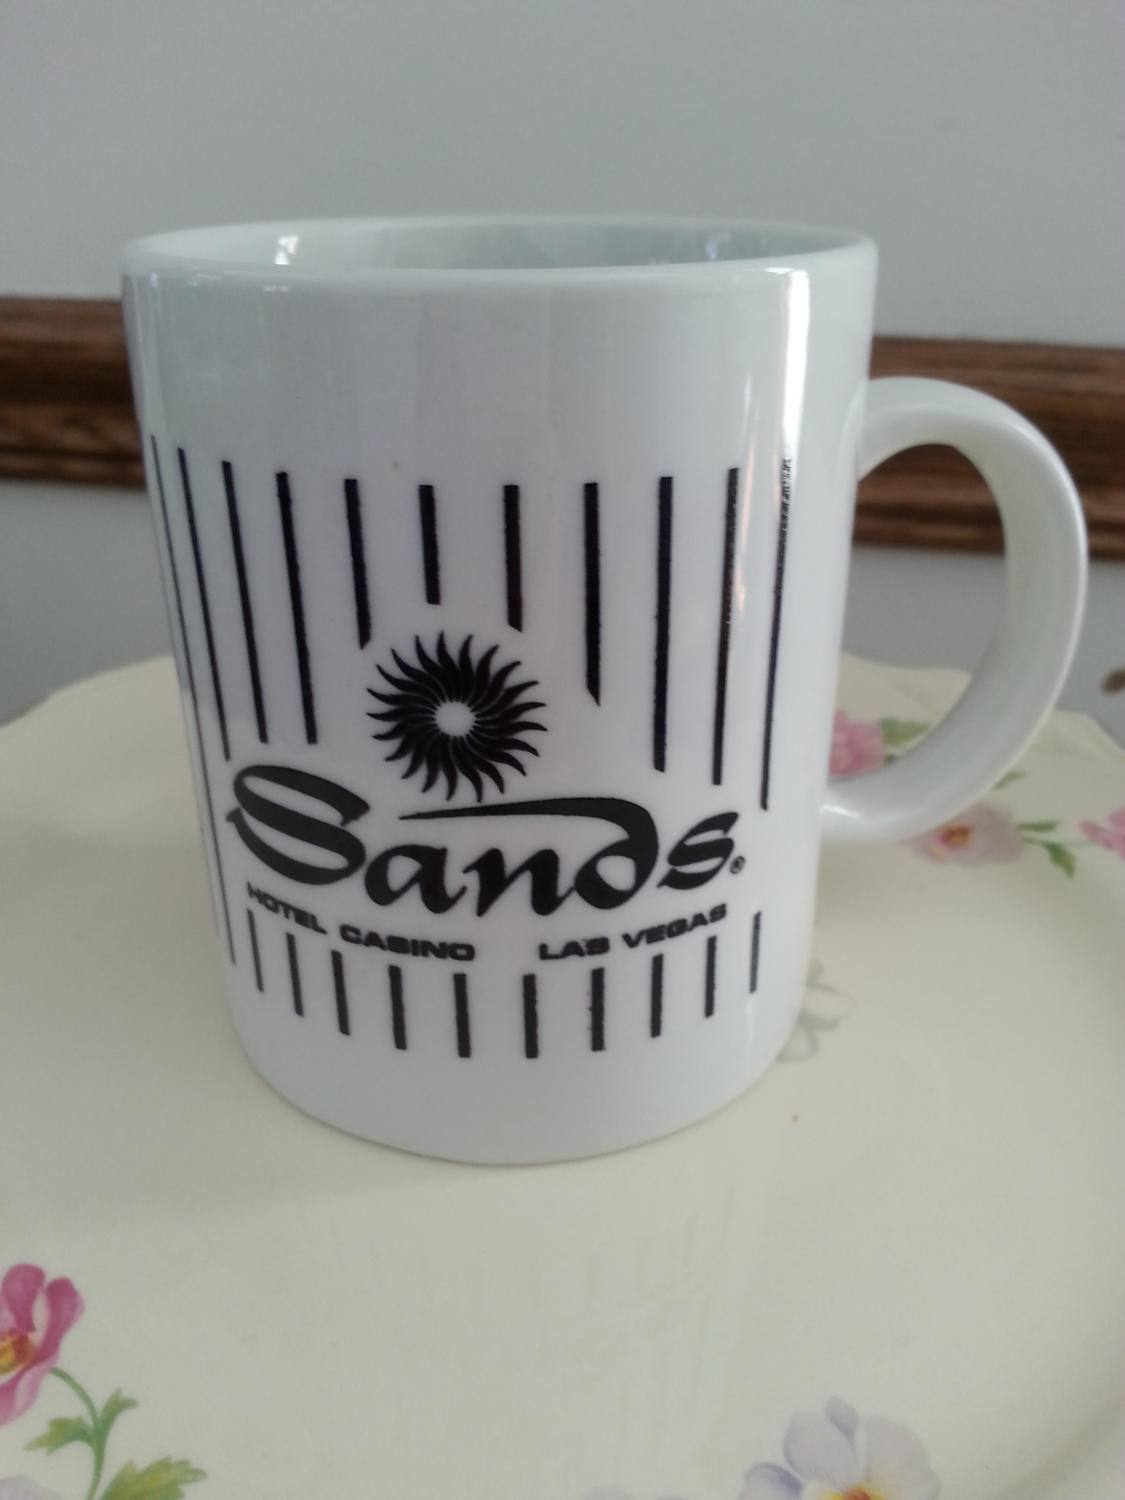 Sands hotel casino vintage items productivity commission report into gambling 2010